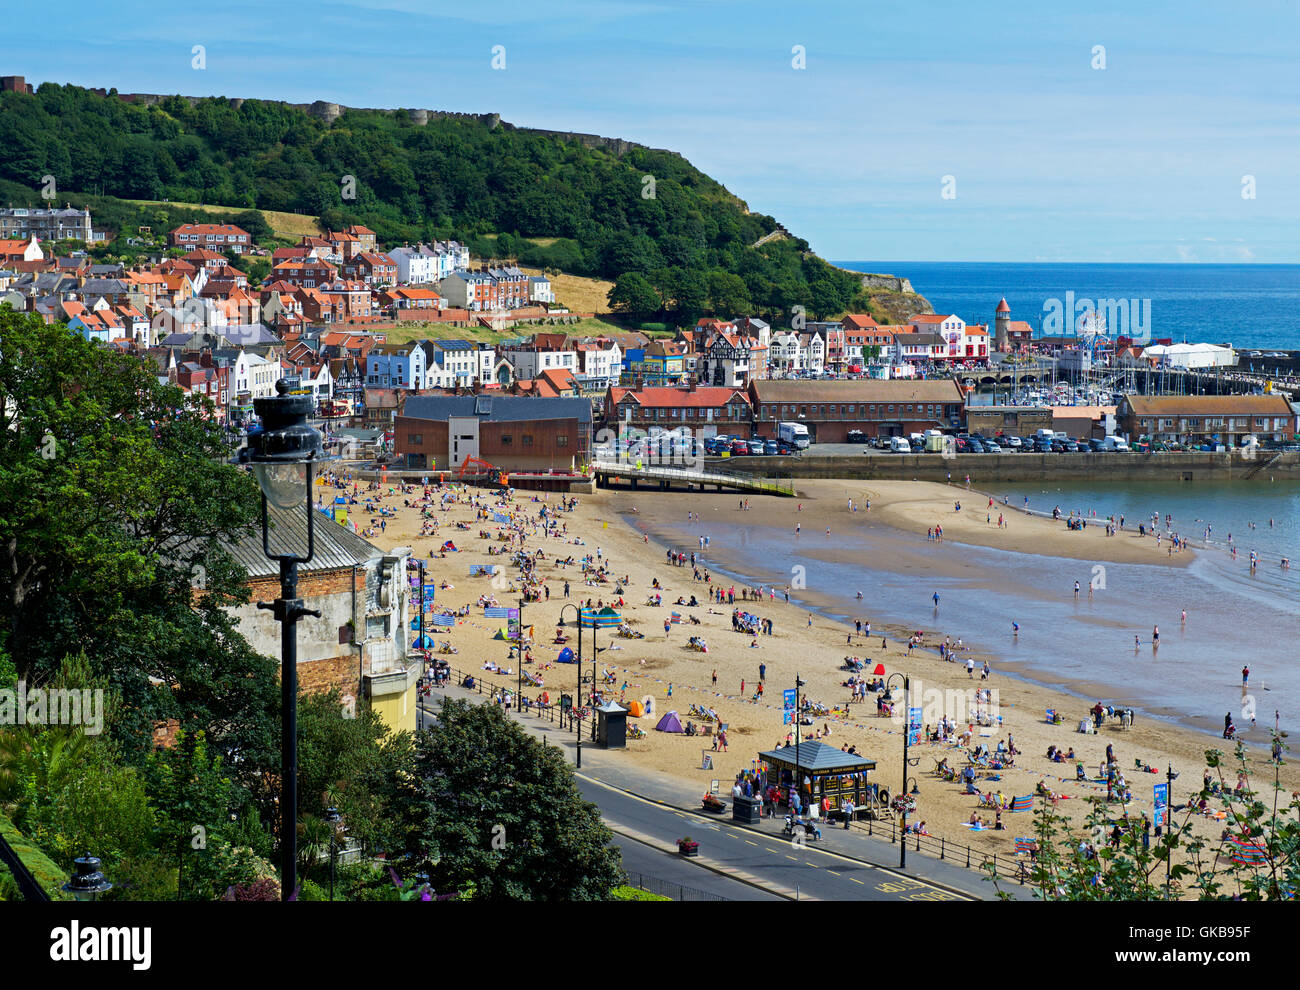 Beach, South Bay, Scarborough, North Yorkshire, England UK - Stock Image